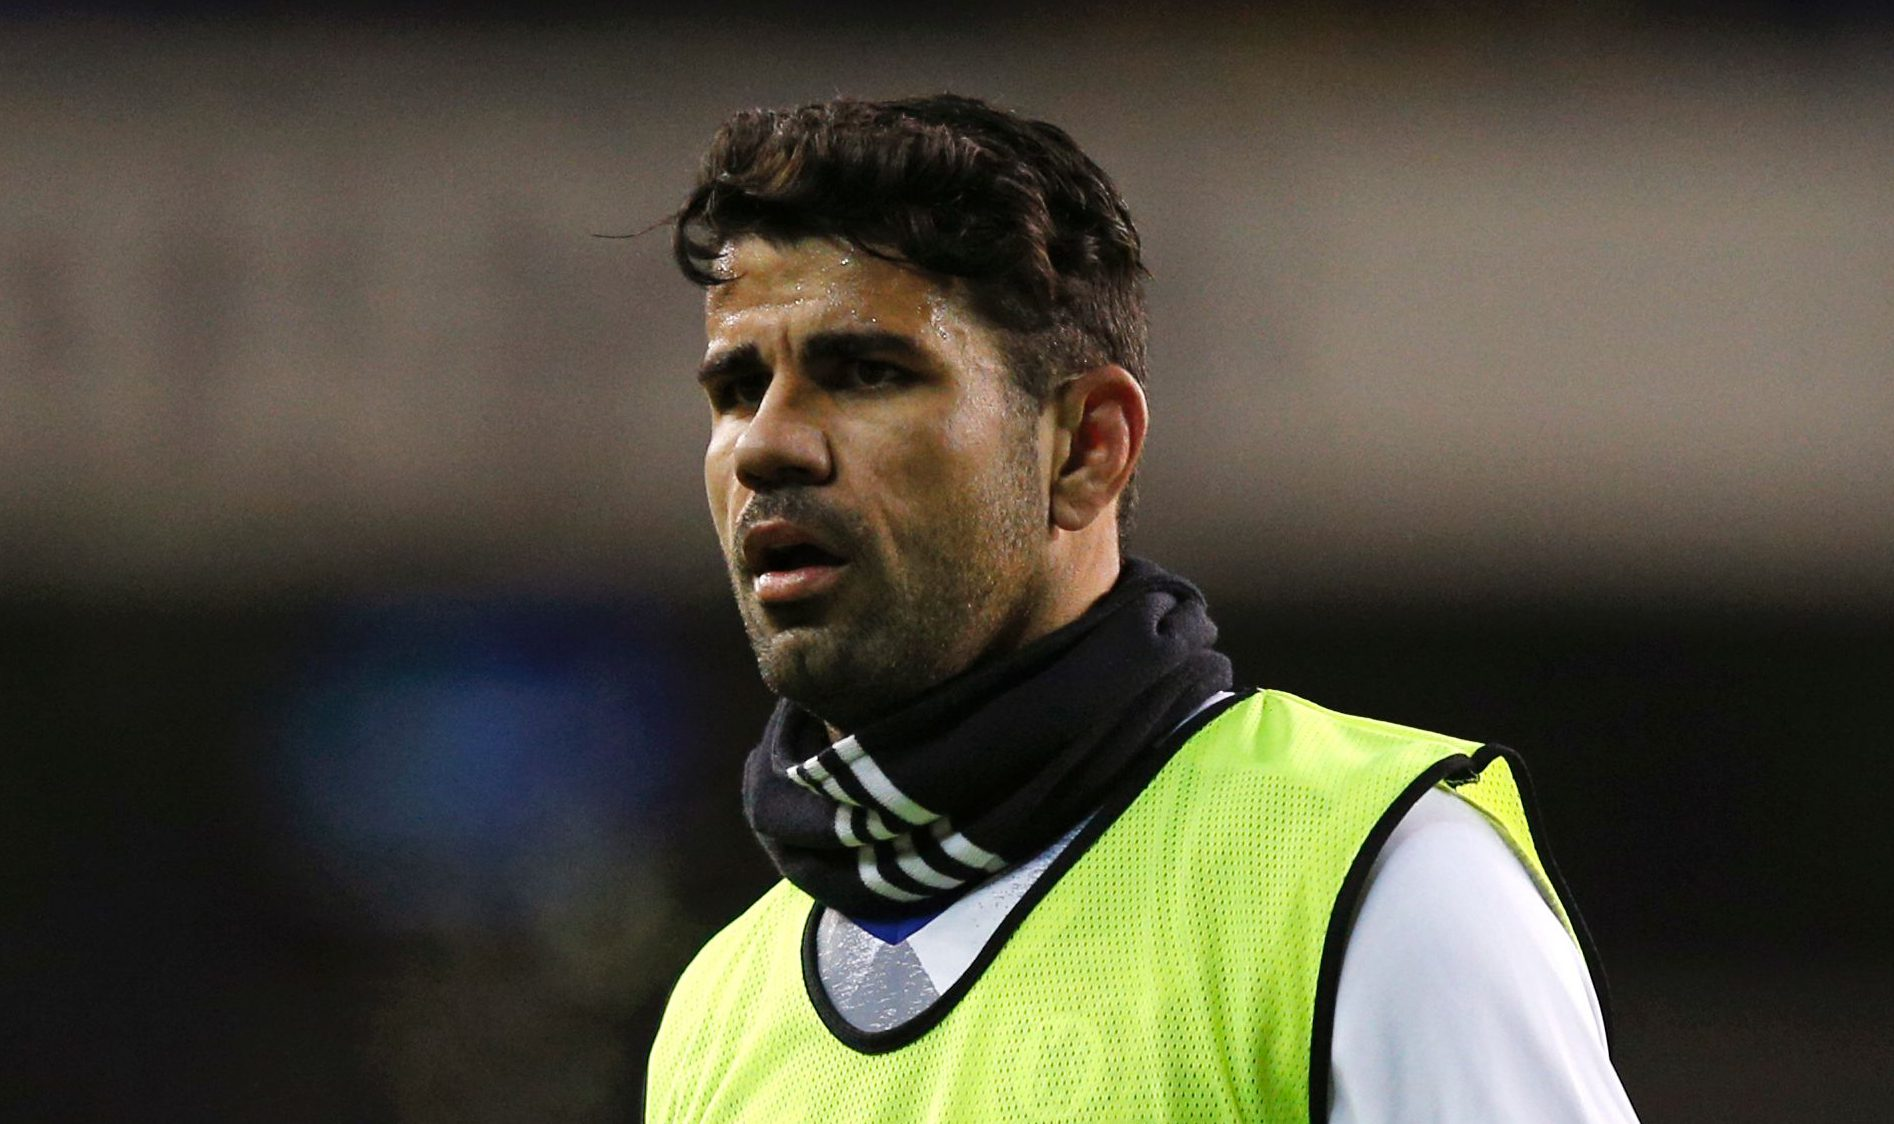 Chelsea's Brazilian-born Spanish striker Diego Costa warms up ahead of the English Premier League football match between Tottenham Hotspur and Chelsea at White Hart Lane in London, on January 4, 2017. / AFP / Adrian DENNIS / RESTRICTED TO EDITORIAL USE. No use with unauthorized audio, video, data, fixture lists, club/league logos or 'live' services. Online in-match use limited to 75 images, no video emulation. No use in betting, games or single club/league/player publications.  /         (Photo credit should read ADRIAN DENNIS/AFP/Getty Images)